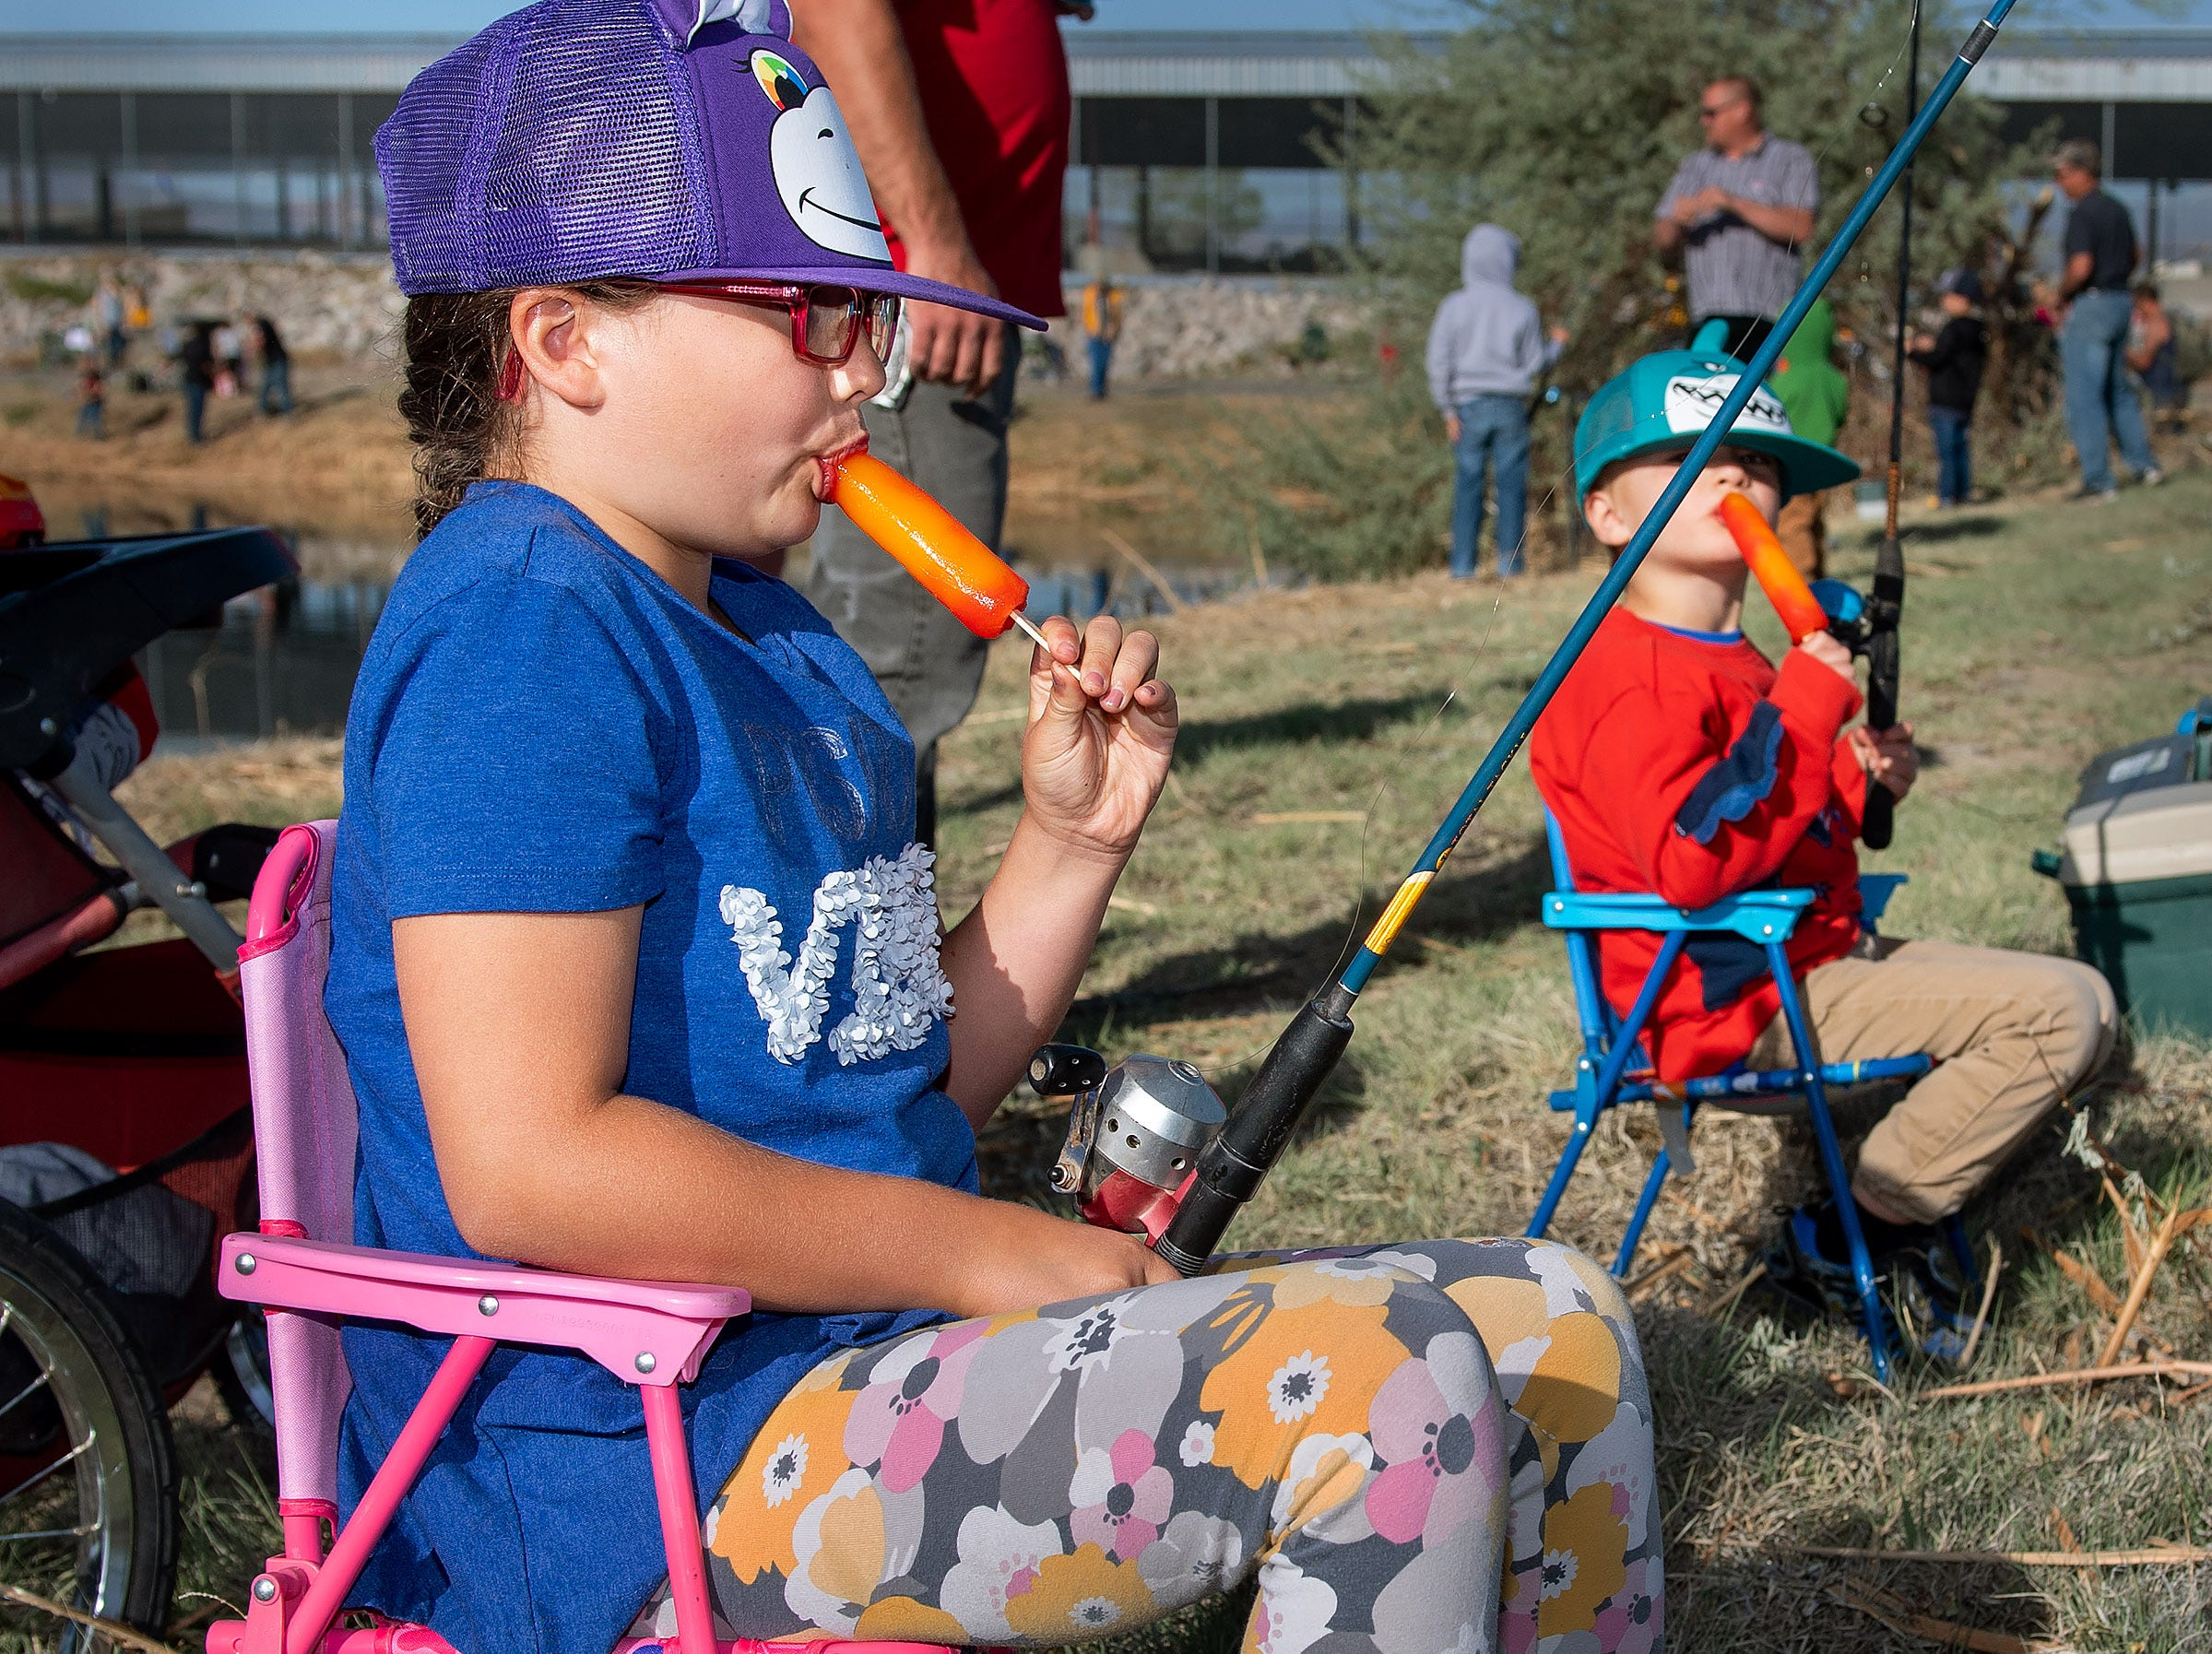 Adelyn Boger, 8, and her brother Caleb Boger, 4, from Yerington, enjoy popsicles while fishing.